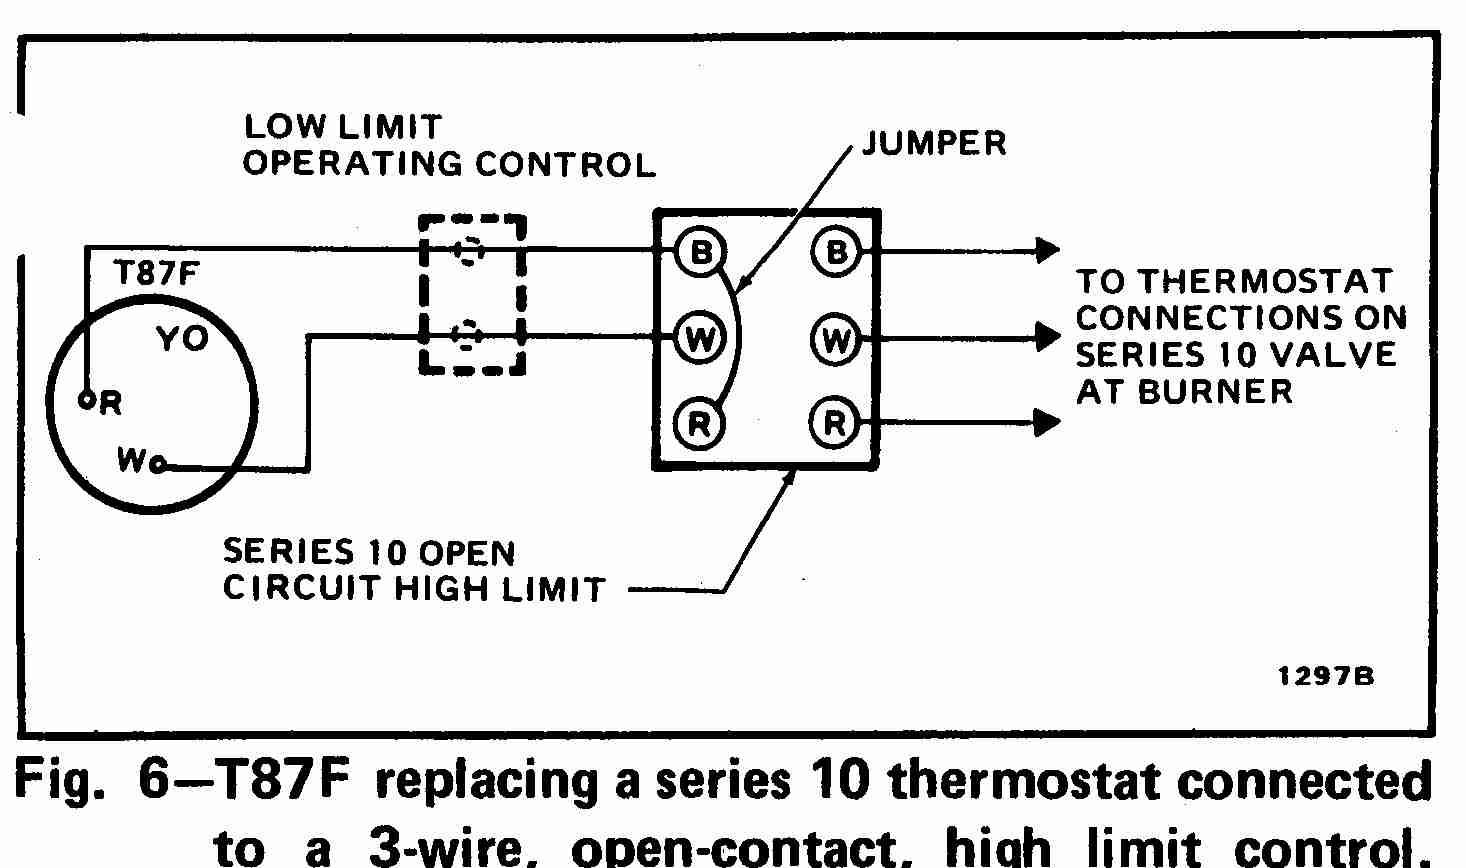 Thermostat Wiring Diagrams Another Blog About Diagram White Rodgers Heat Pump Room For Hvac Systems Rh Inspectapedia Com Furnace